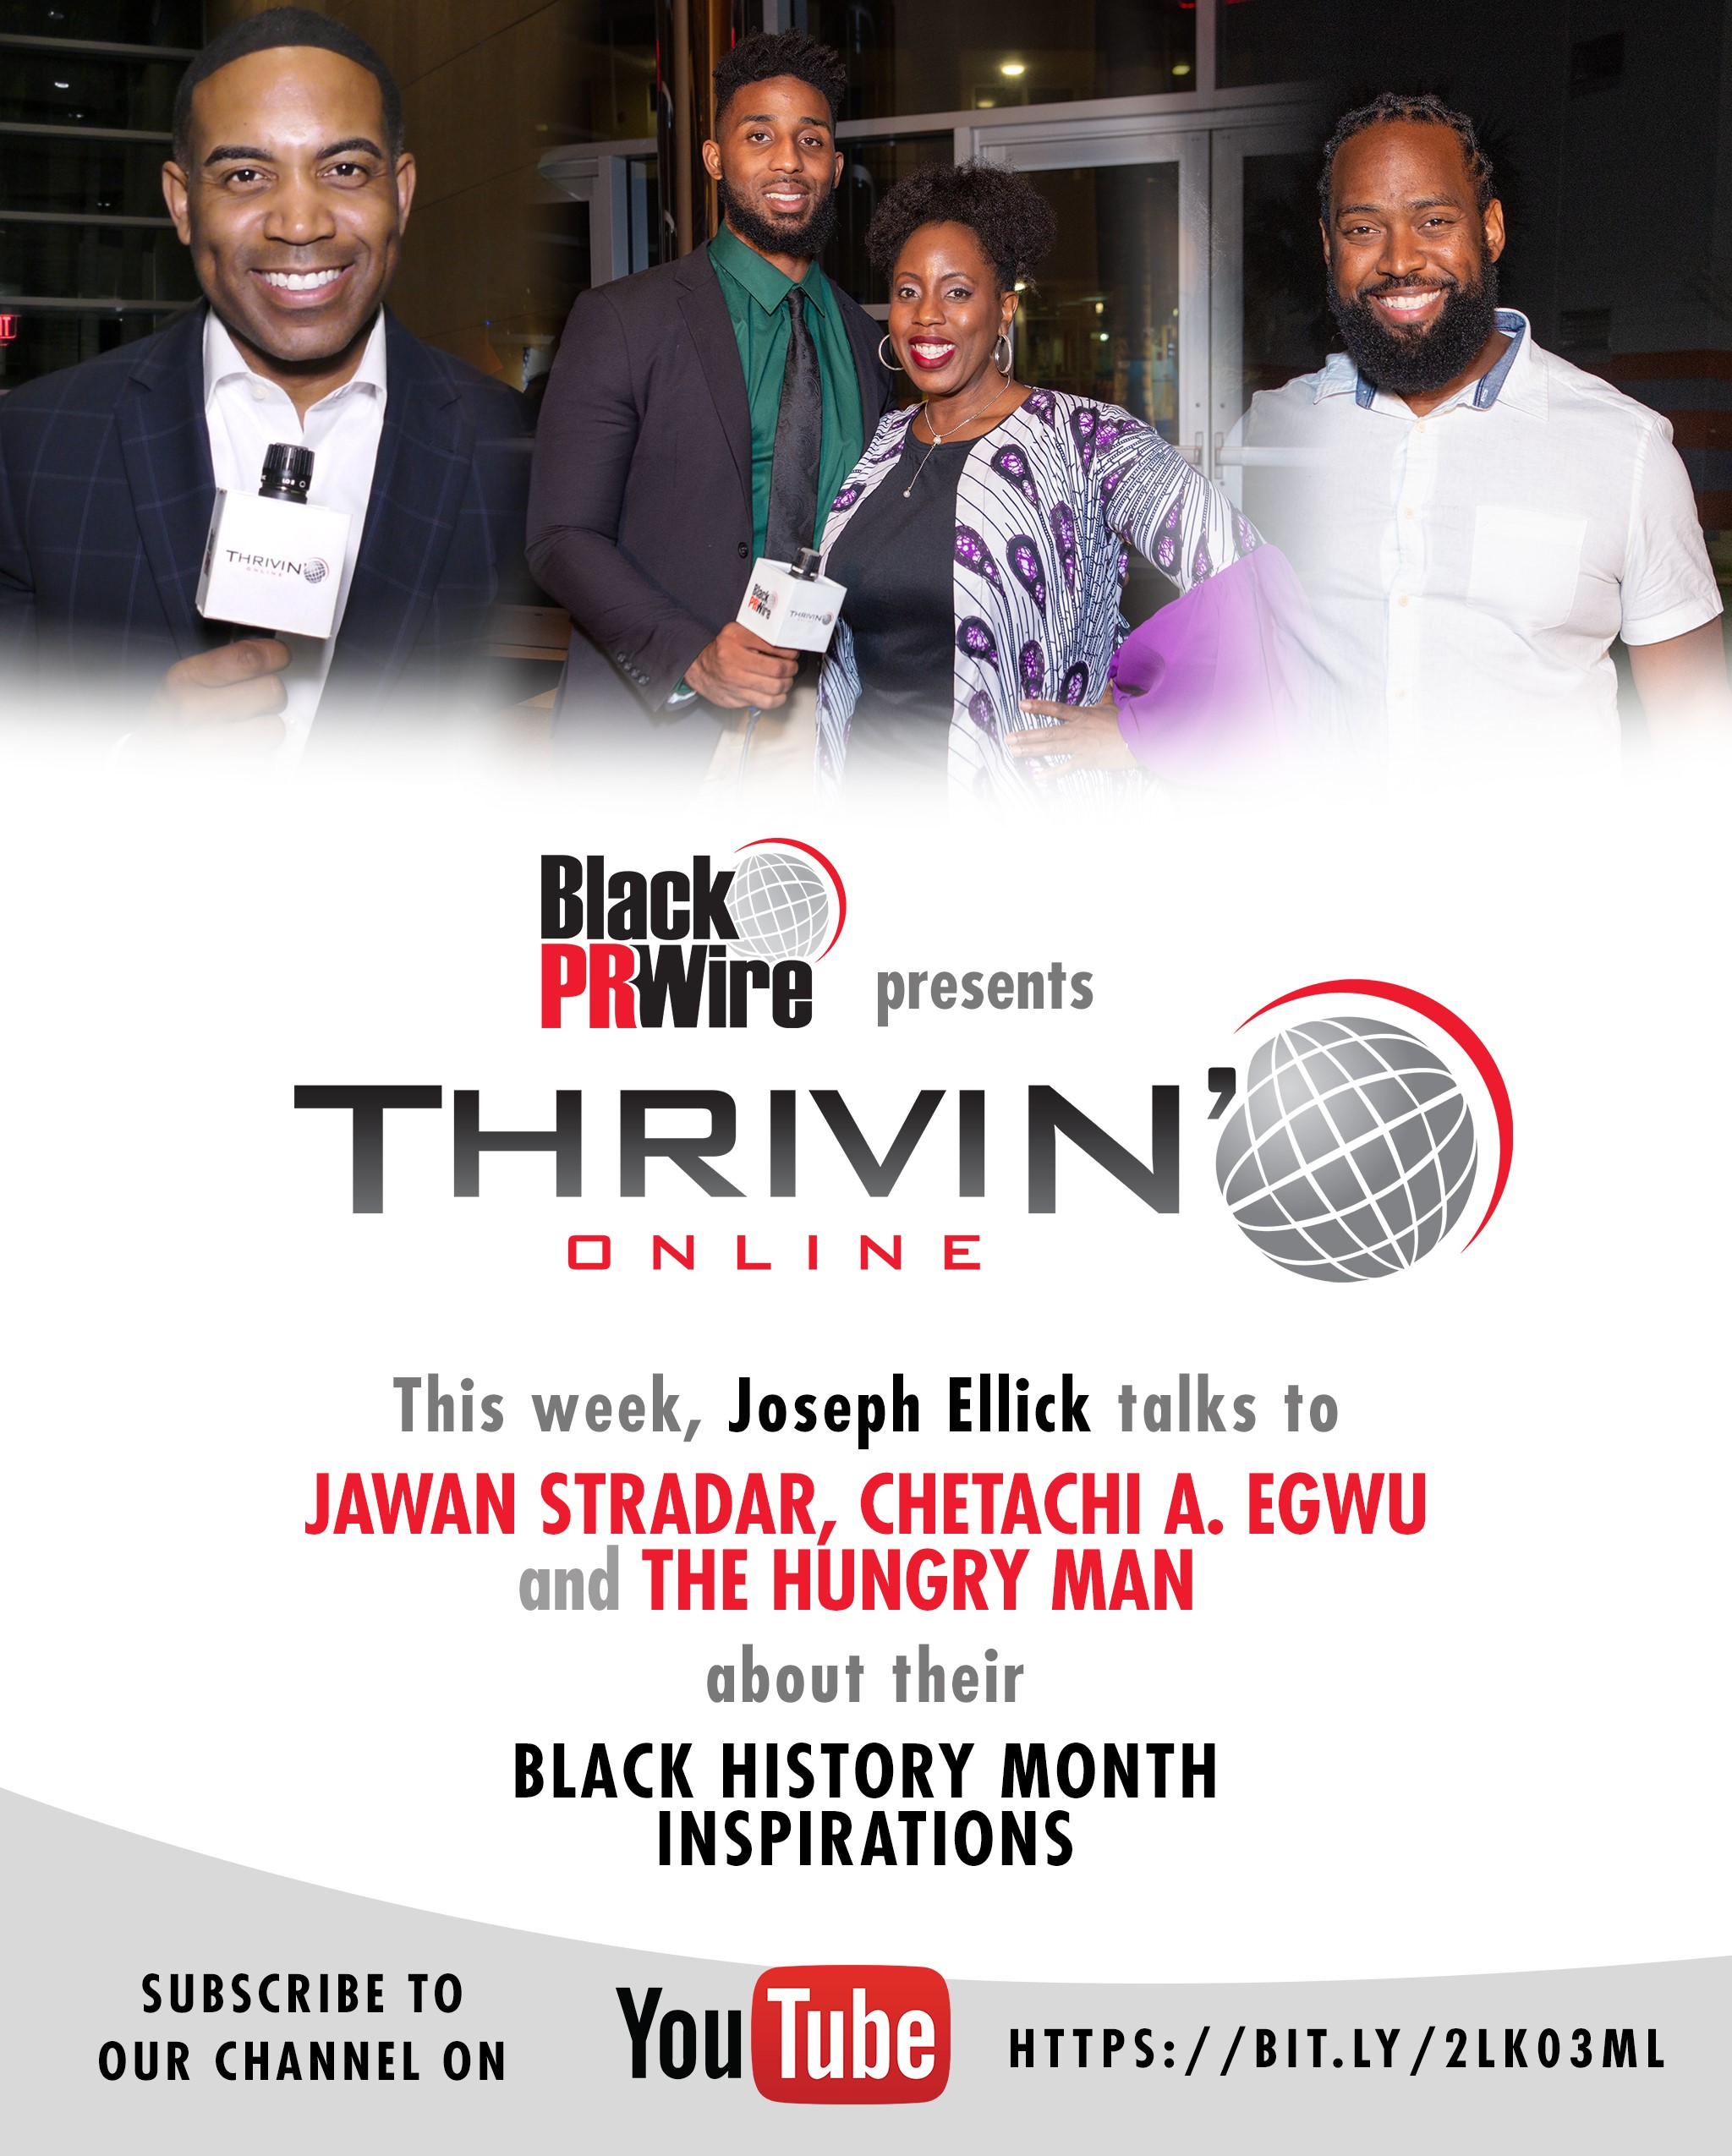 BPRW) THRIVIN ONLINE presents Black History Month Inspirations